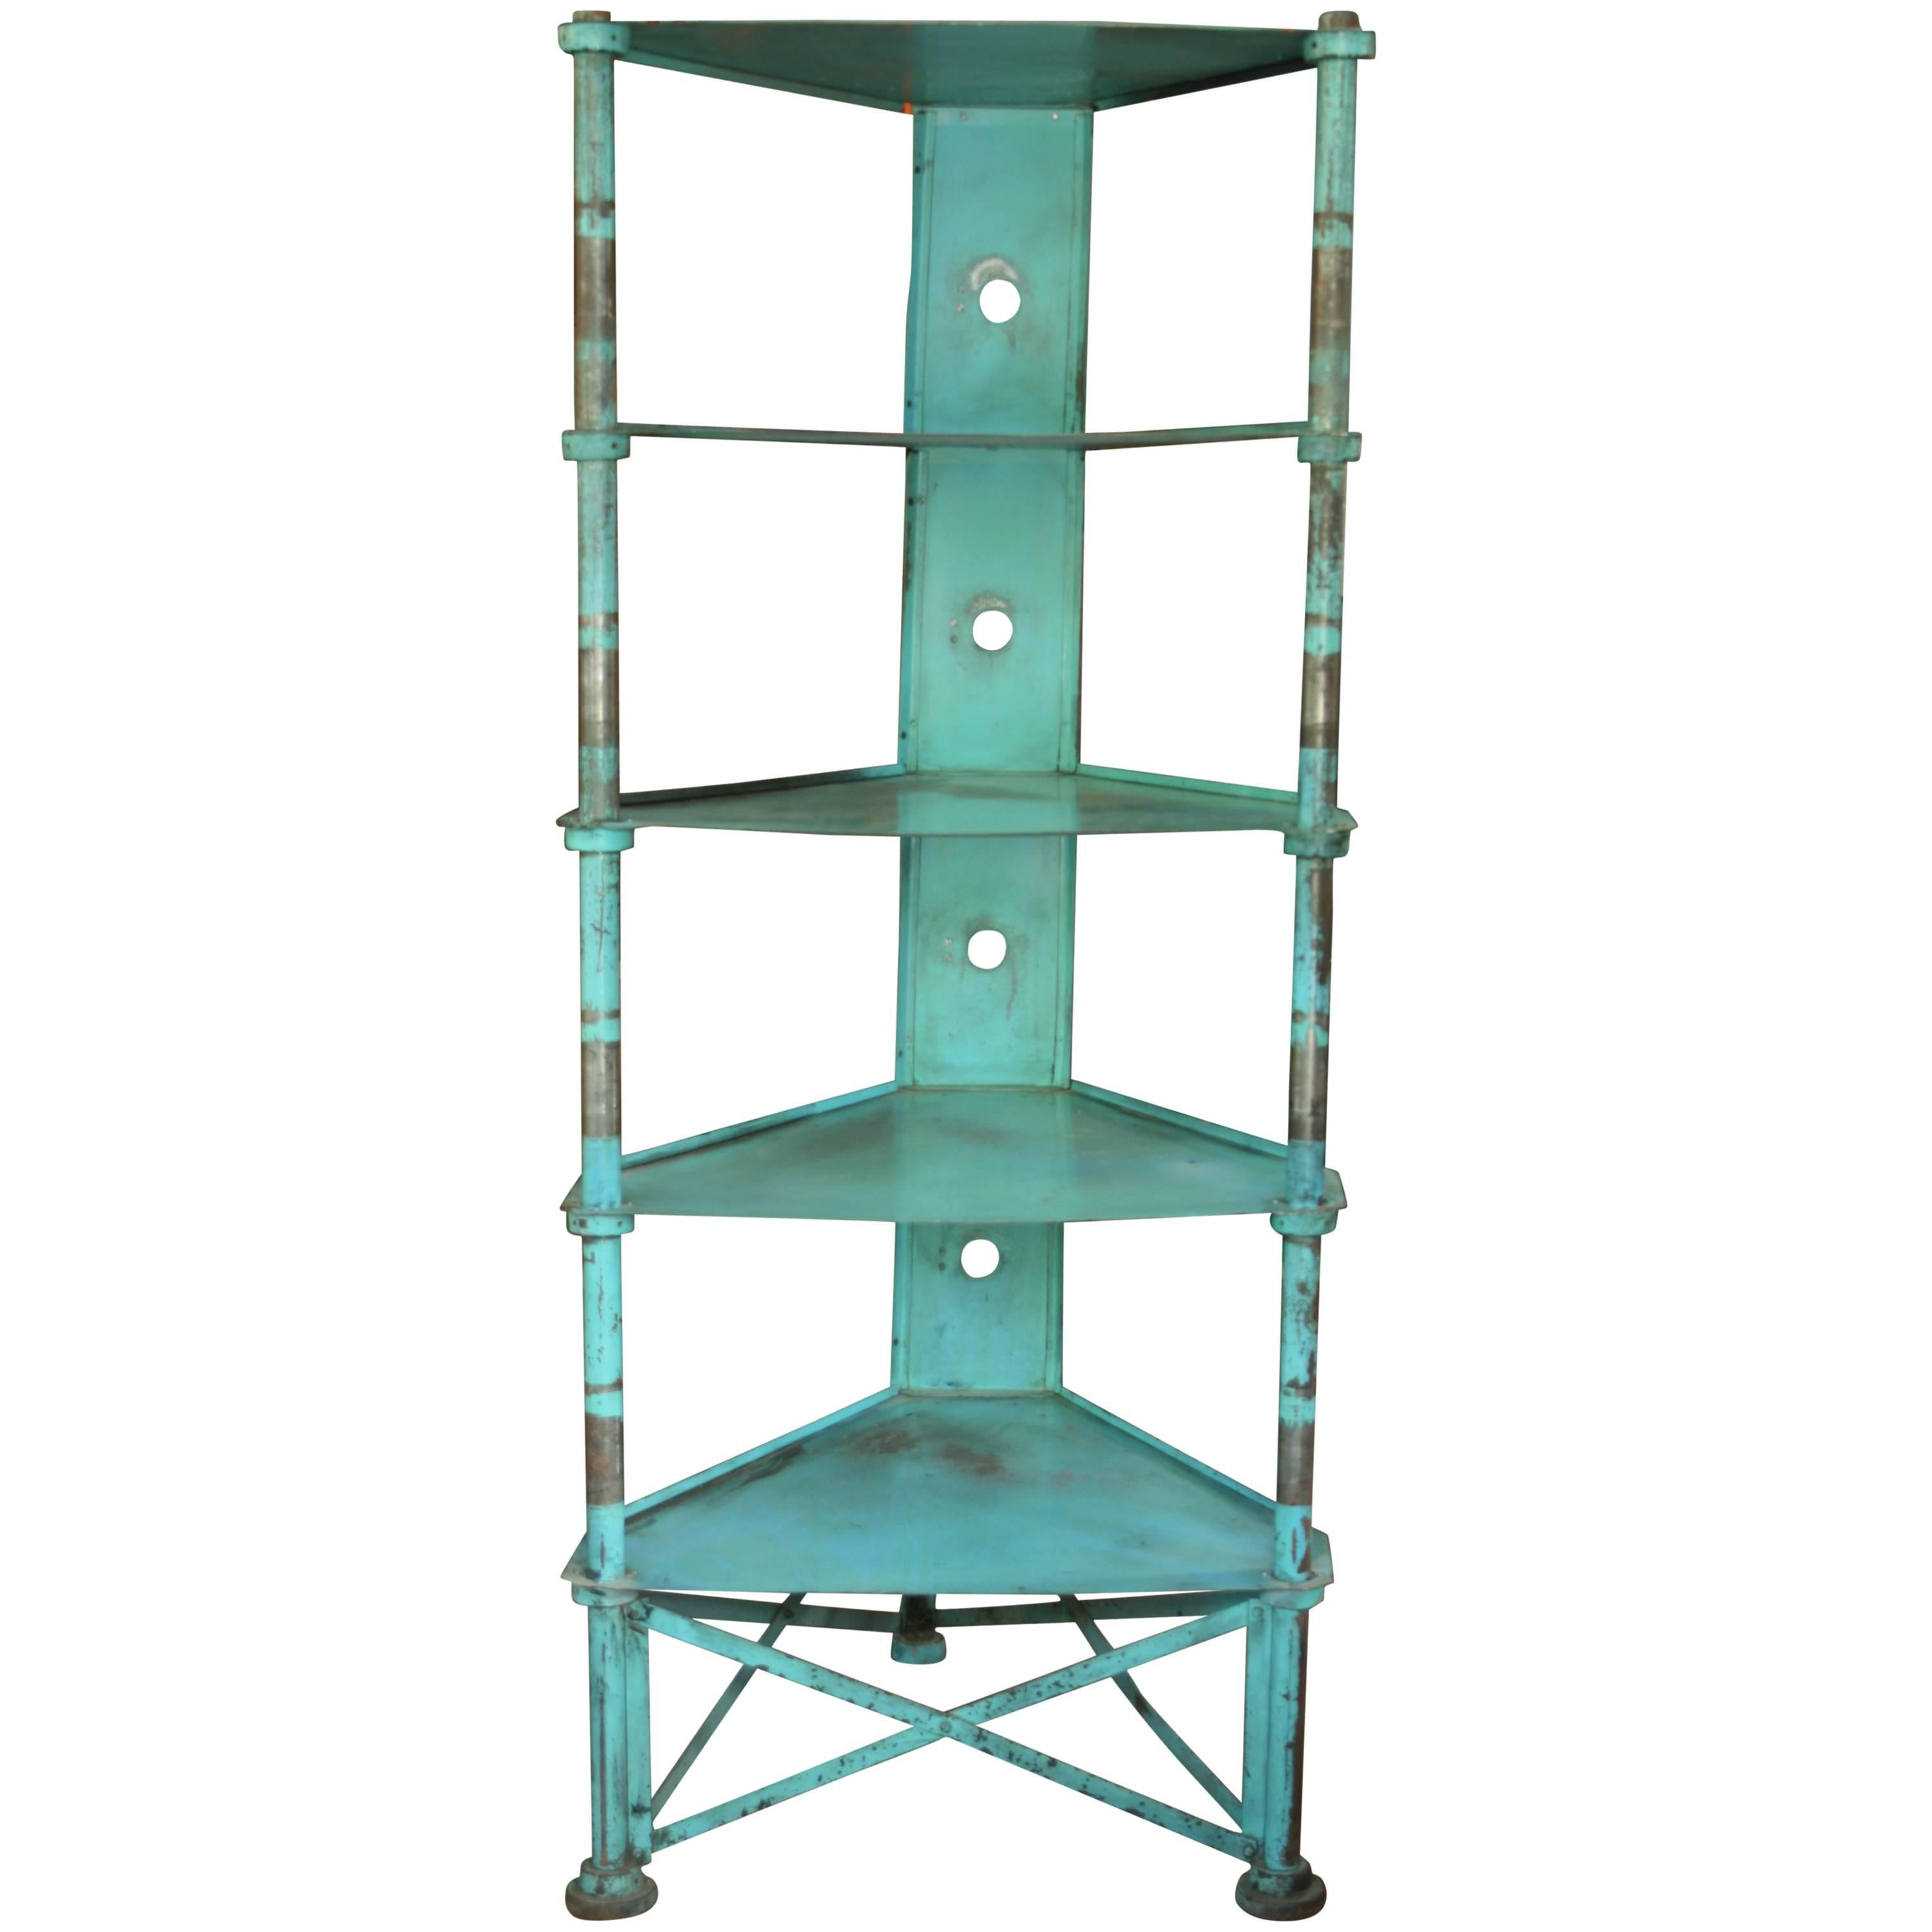 1970s Tubular Chrome and Glass Etagere For Sale at 1stdibs